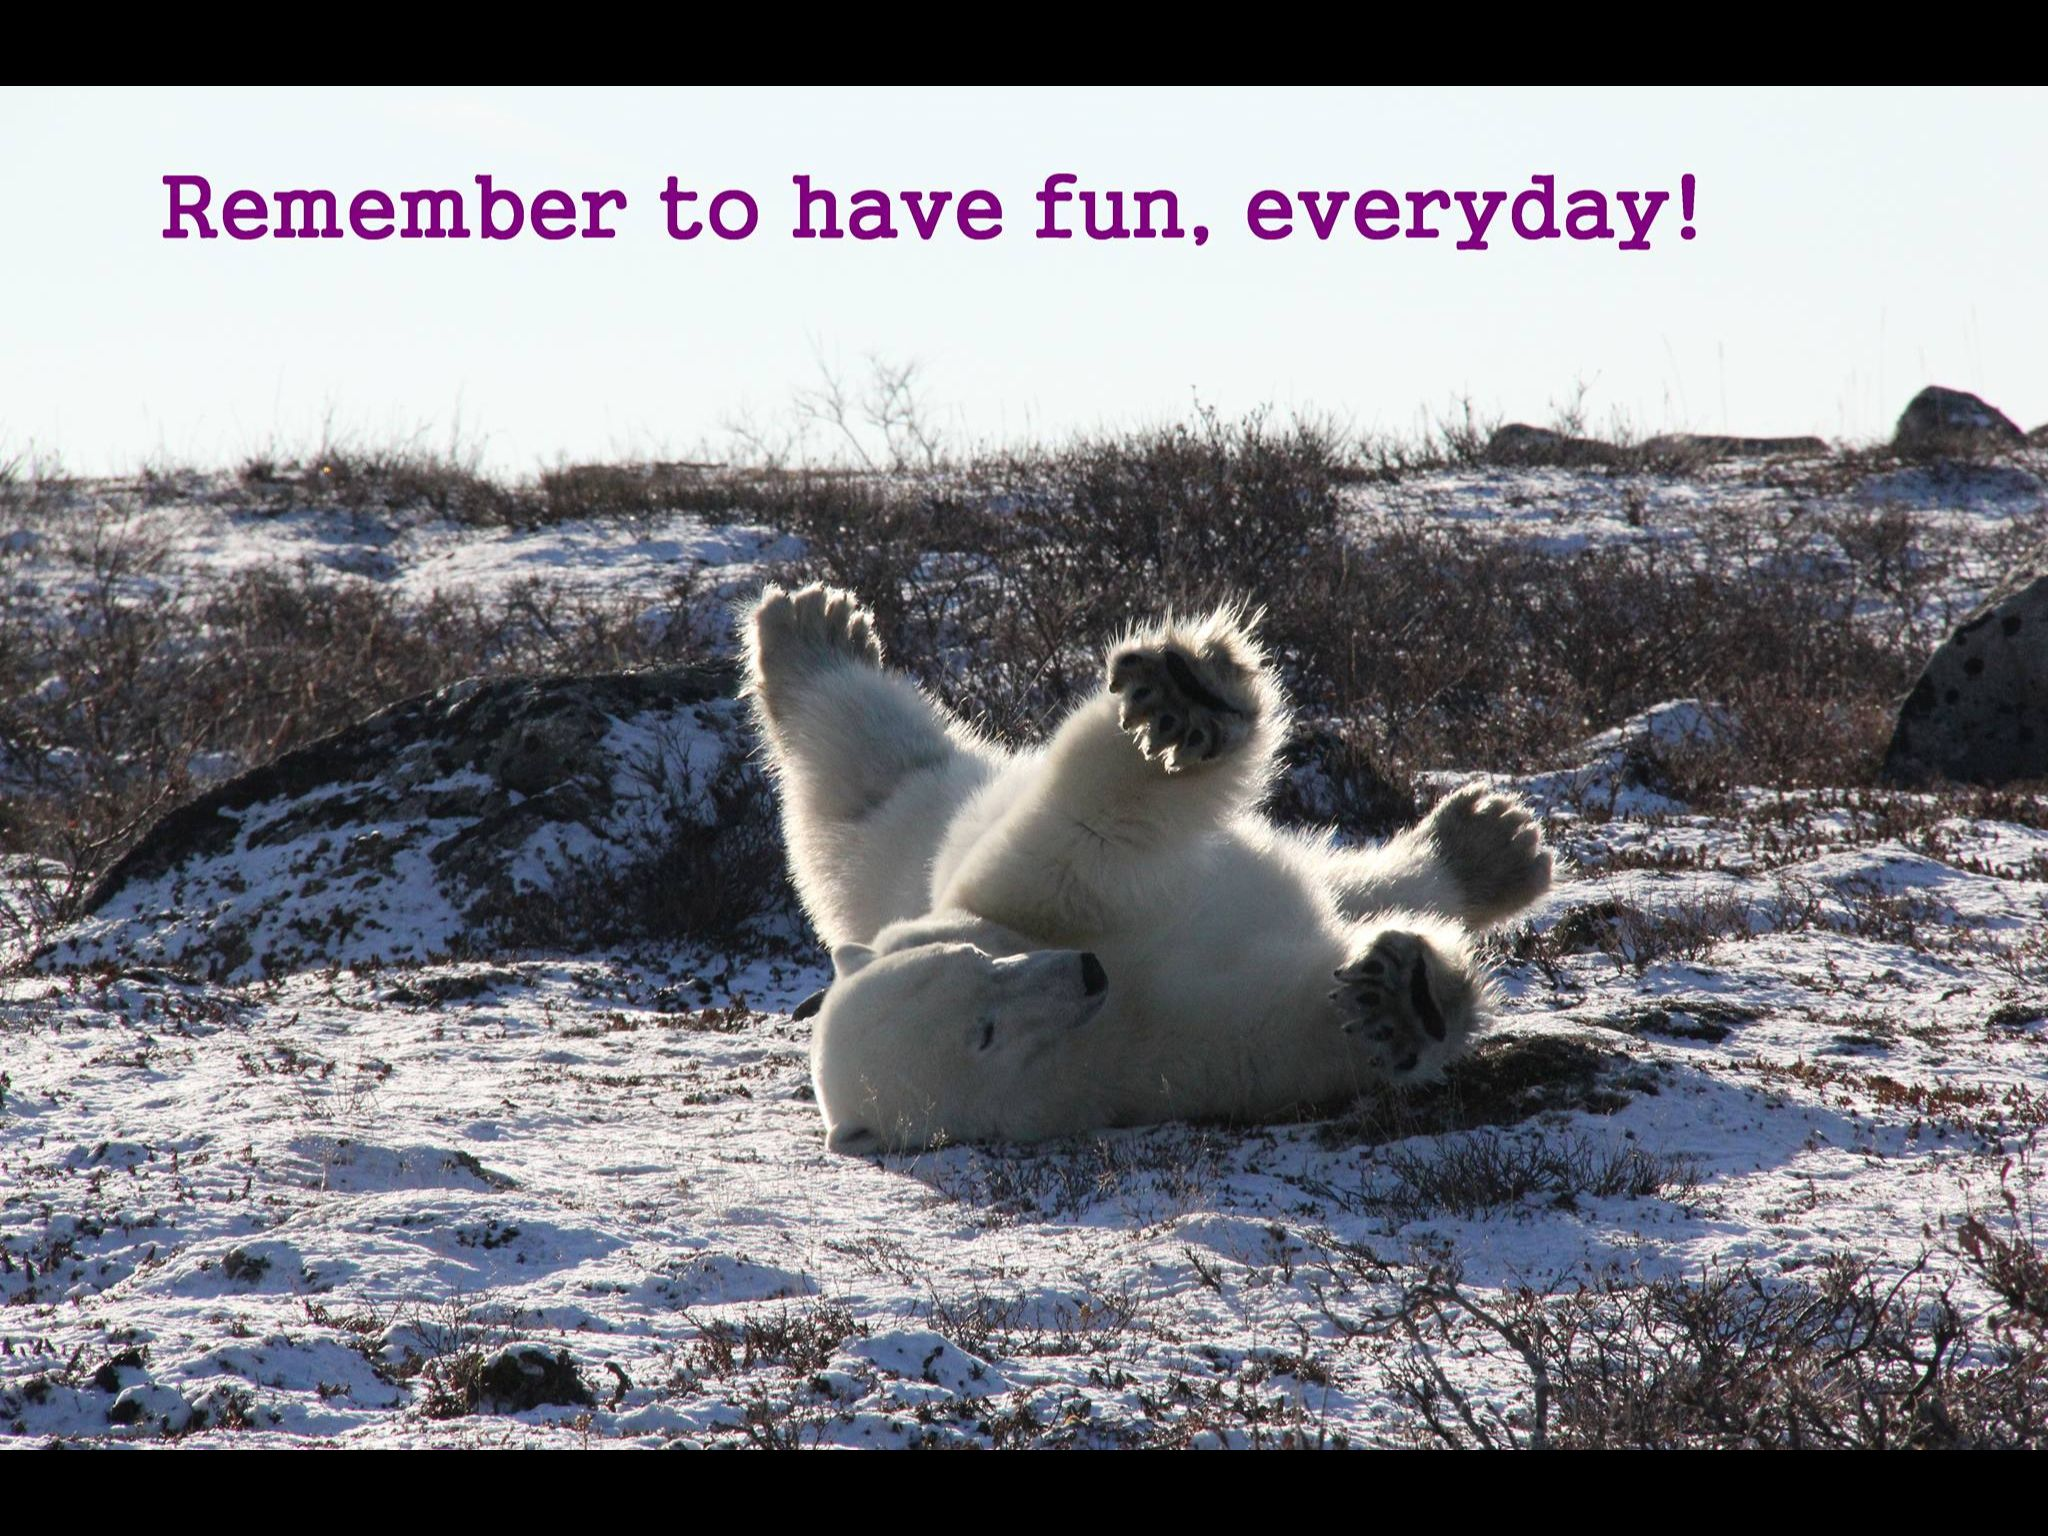 Remember to have fun, everyday!